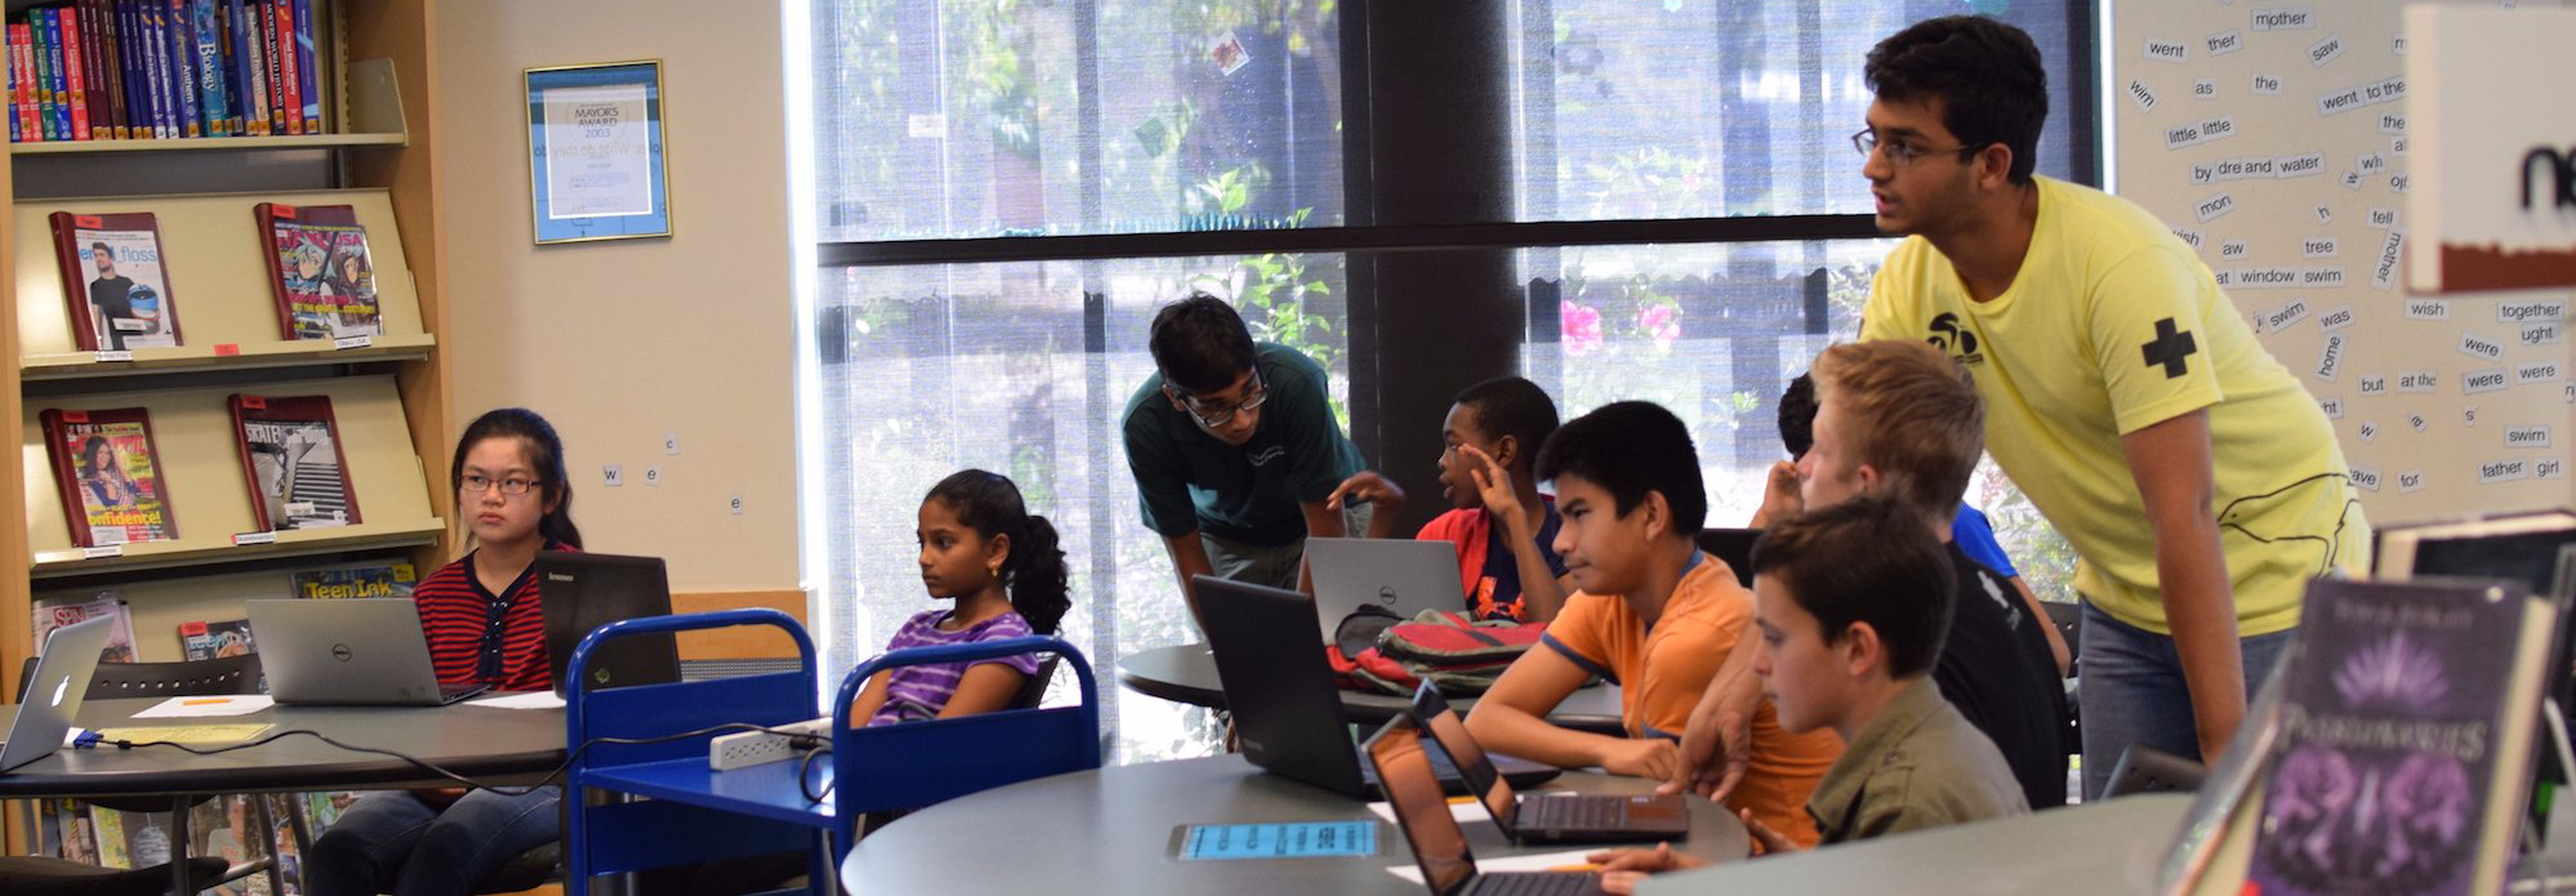 Coding Classes For Teens And Children Now Offered At Santa Clara